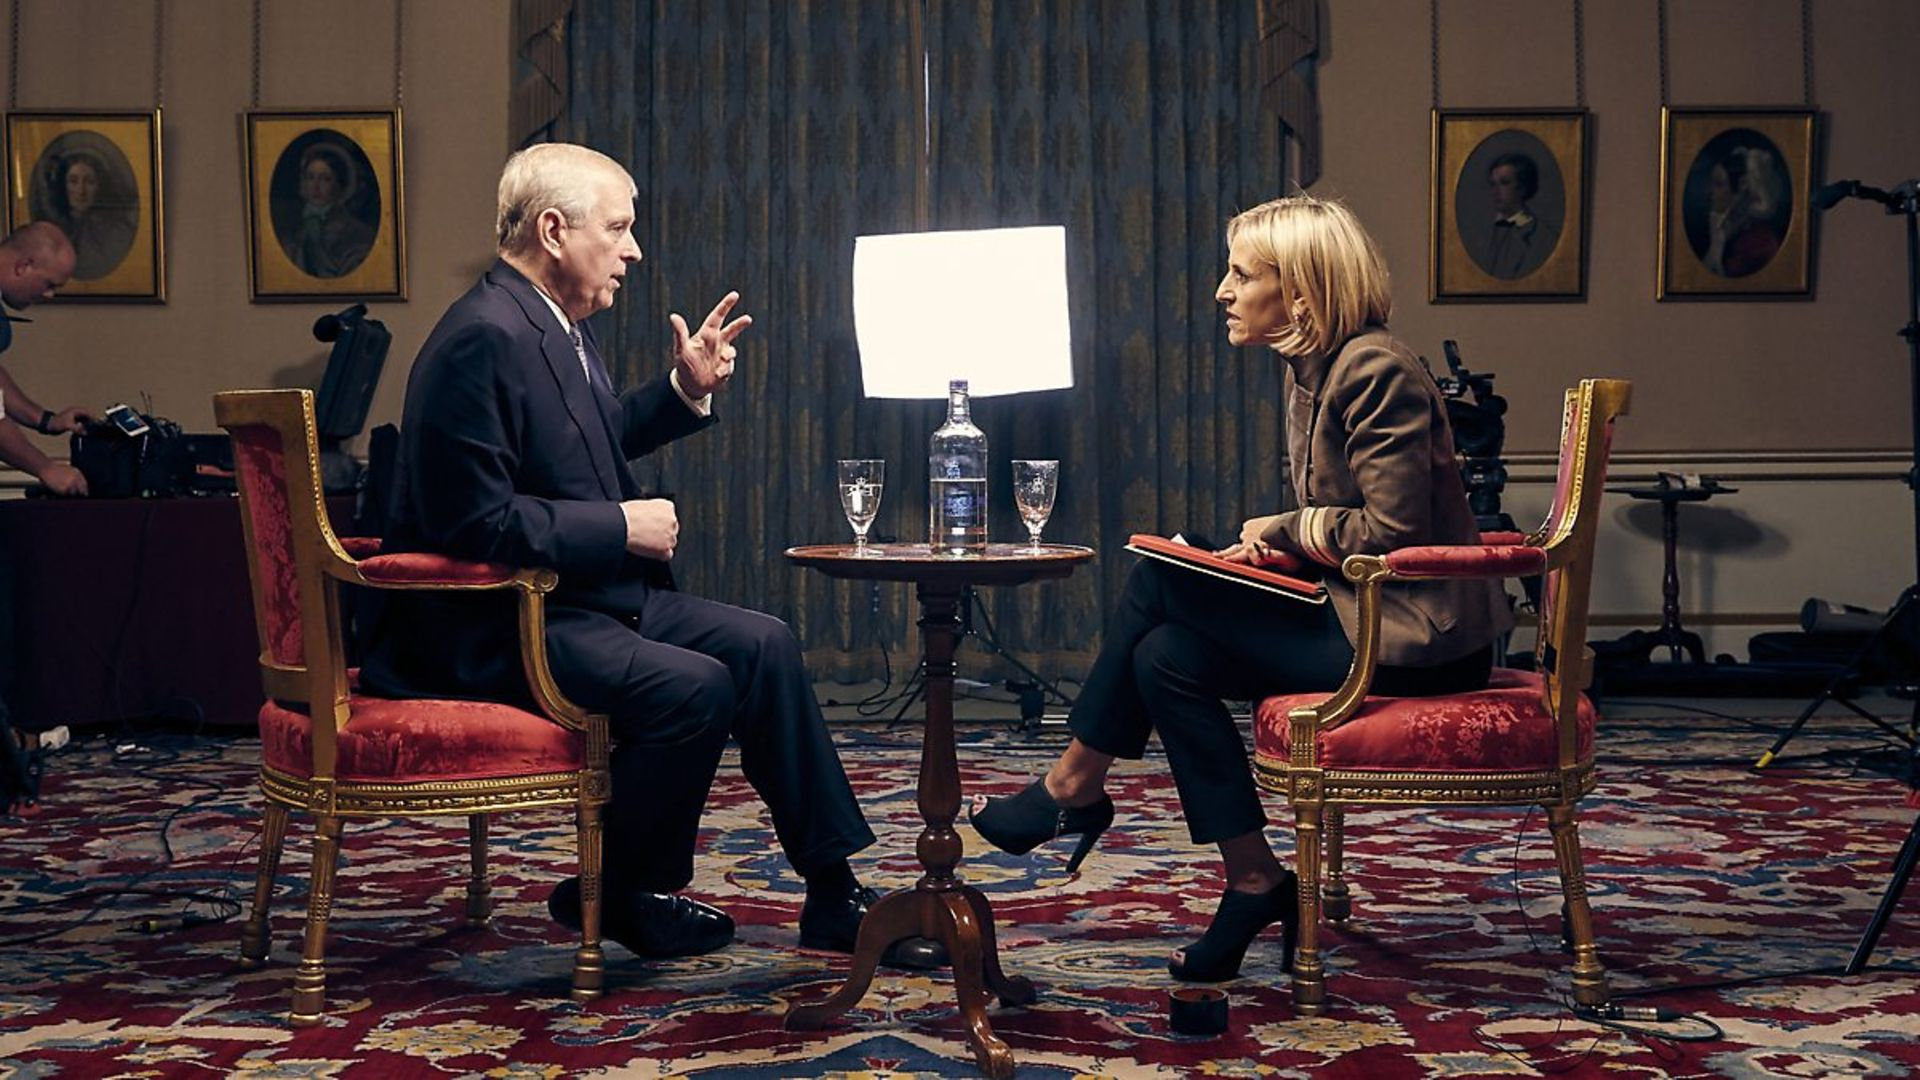 Prince Andrew is interviewed by the BBC's Emily Maitlis - Credit: BBC